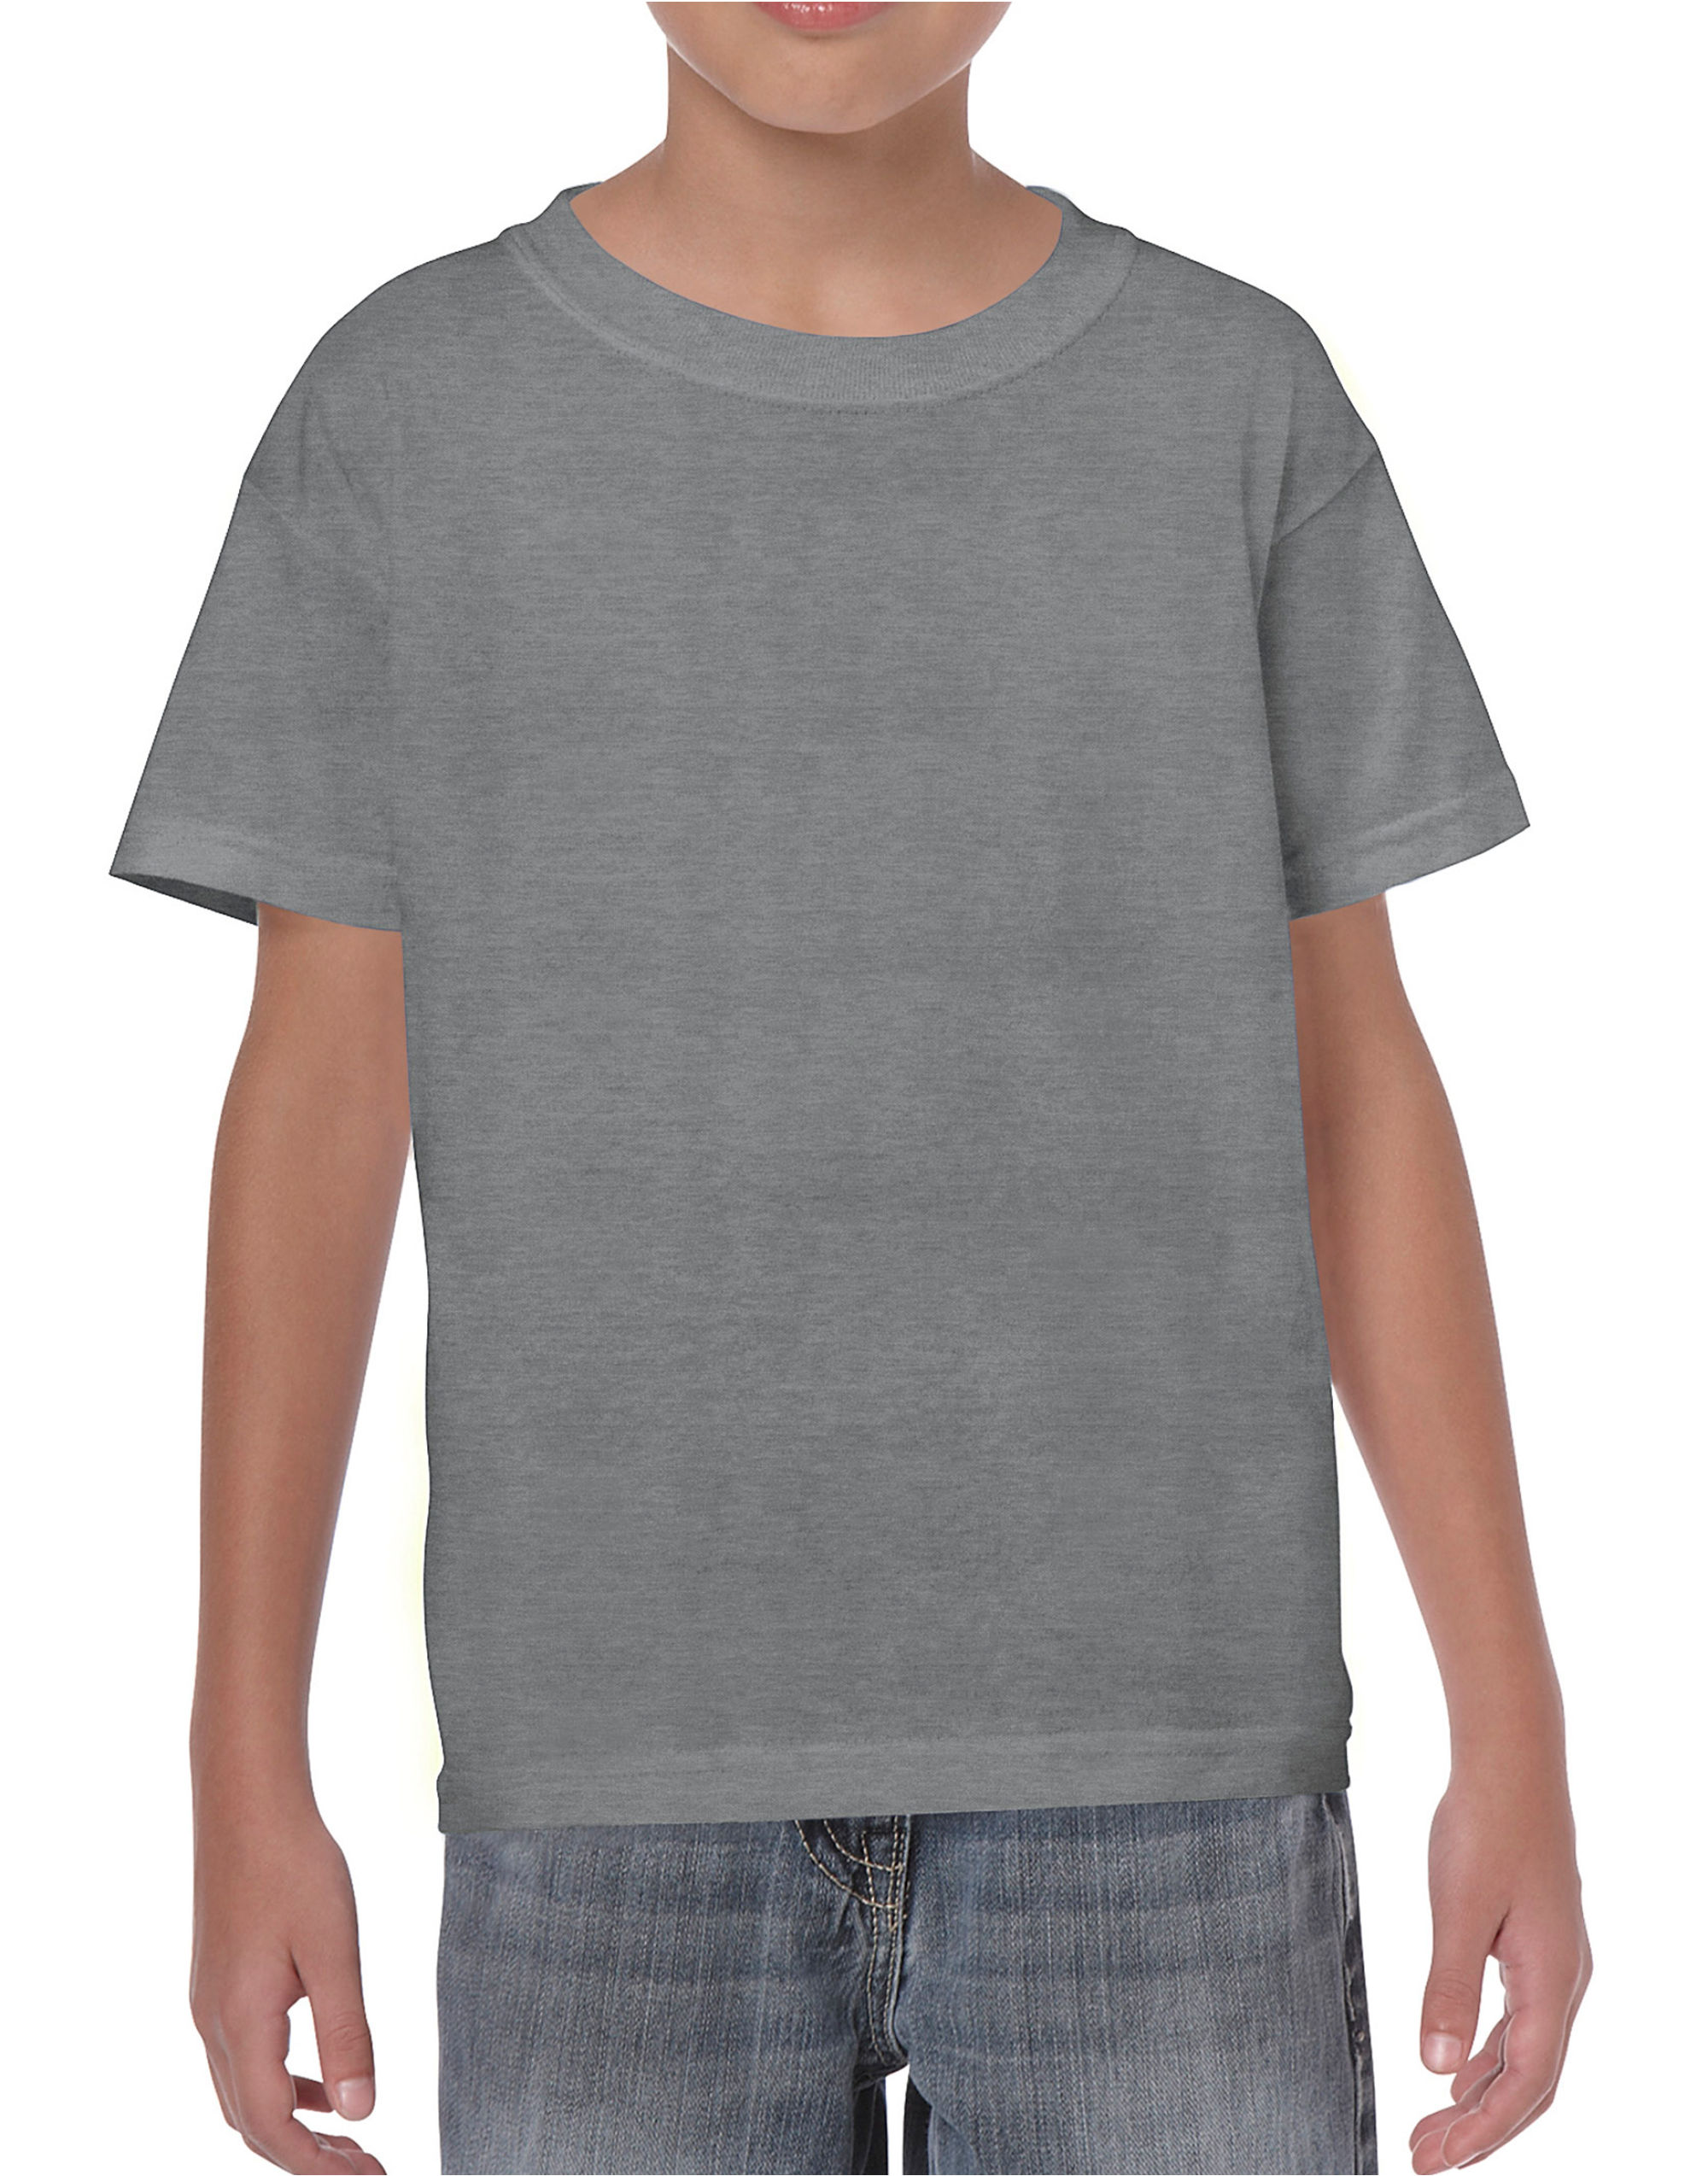 Childrens Heavy T-Shirt